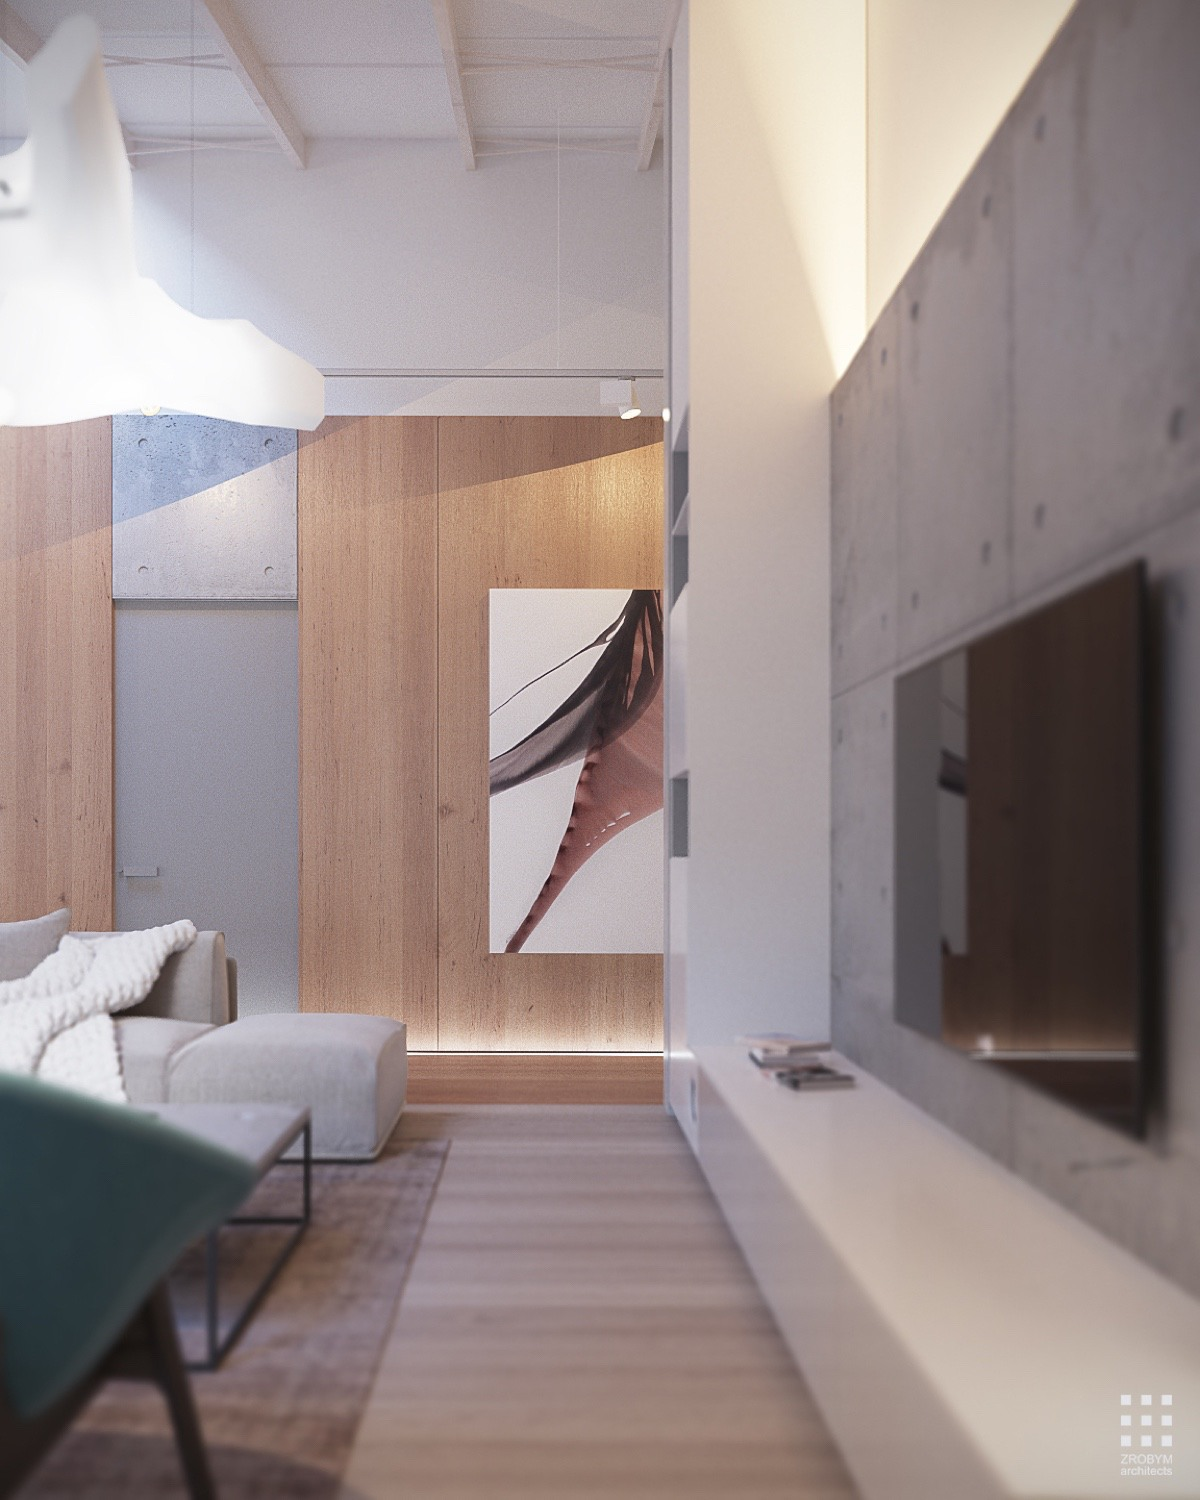 Natural Wood And Concrete Interior Design - An organic modern home with subtle industrial undertones